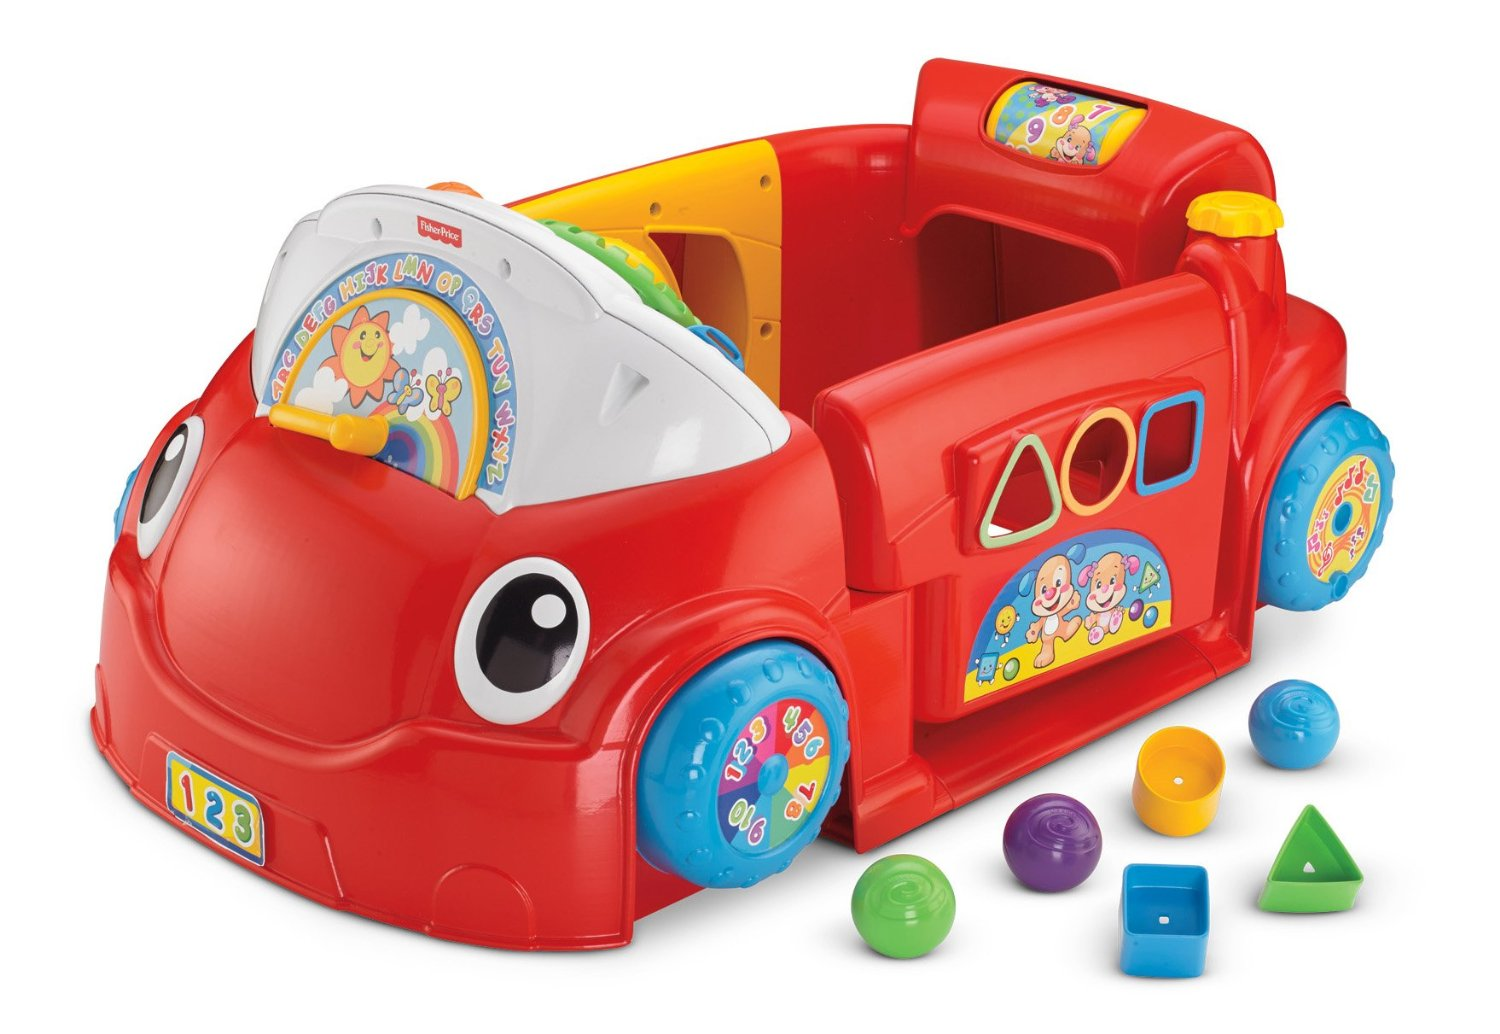 Fisher-Price Laugh & Learn Smart Stages Crawl Around Car Only $39.99! (reg. $59.88)